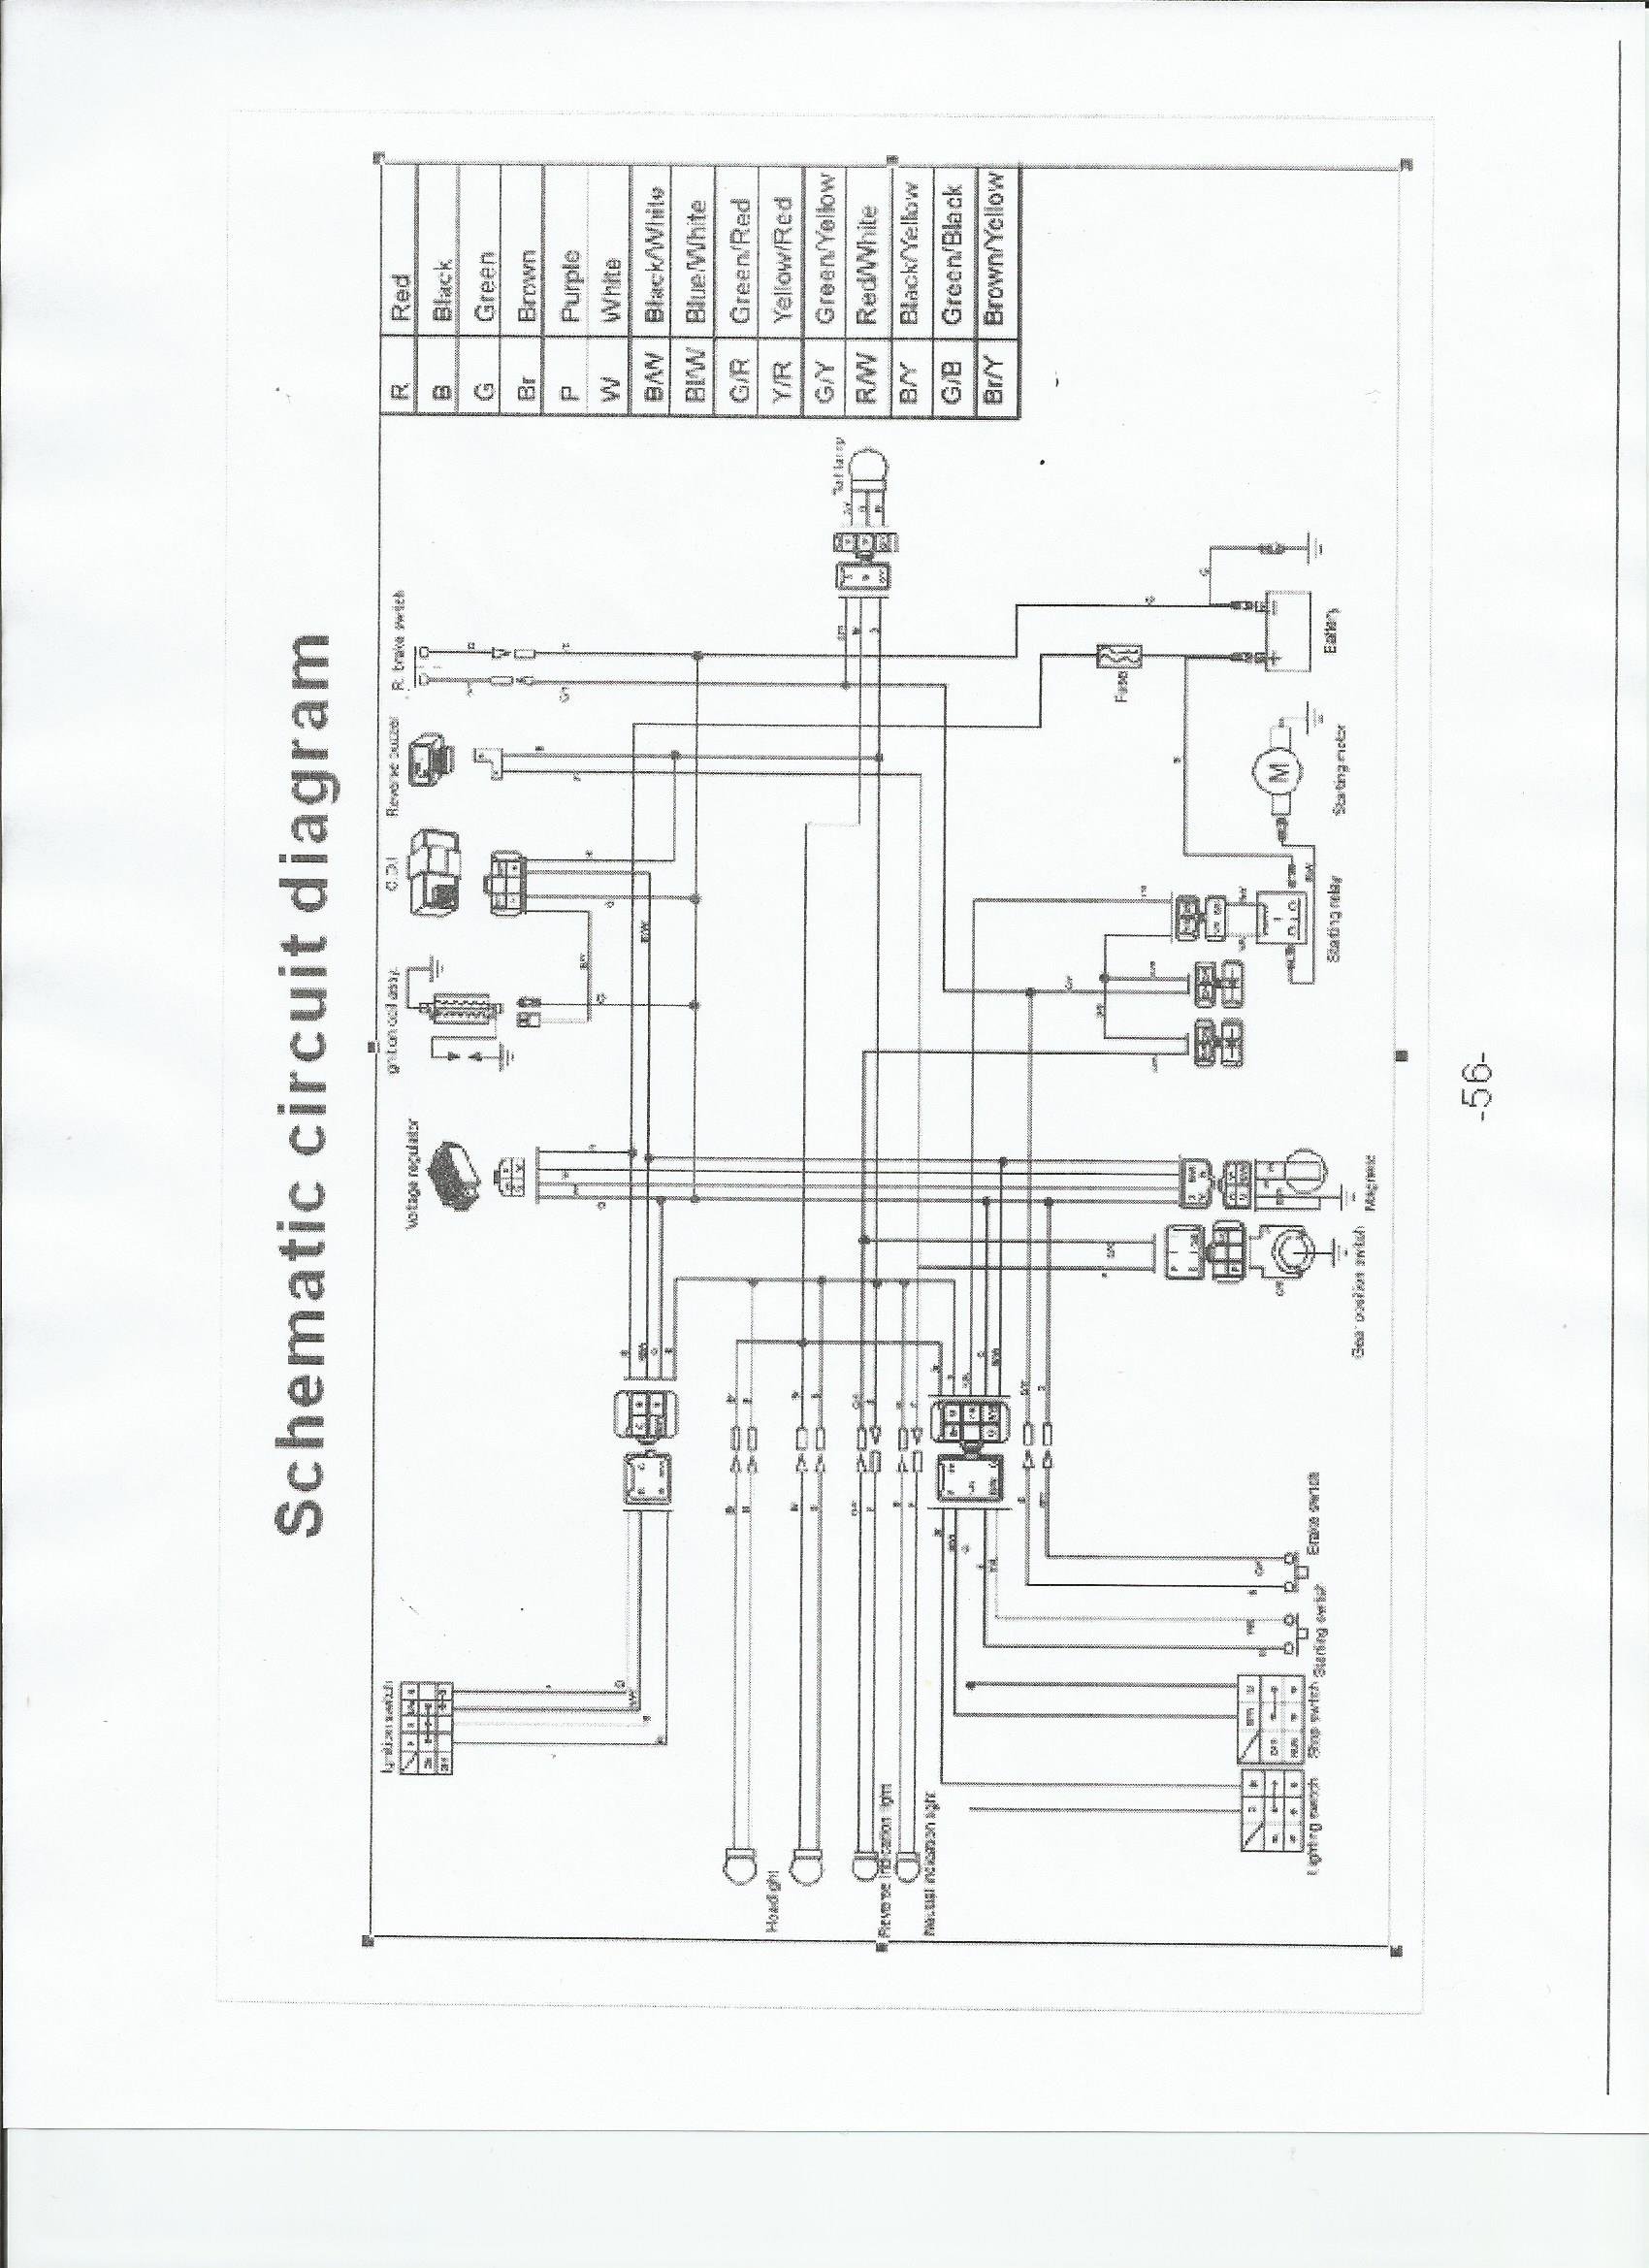 110 Cc Ignition Wiring Diagram Pdf Taotao Mini And Youth Atv Wiring Schematic Familygokarts